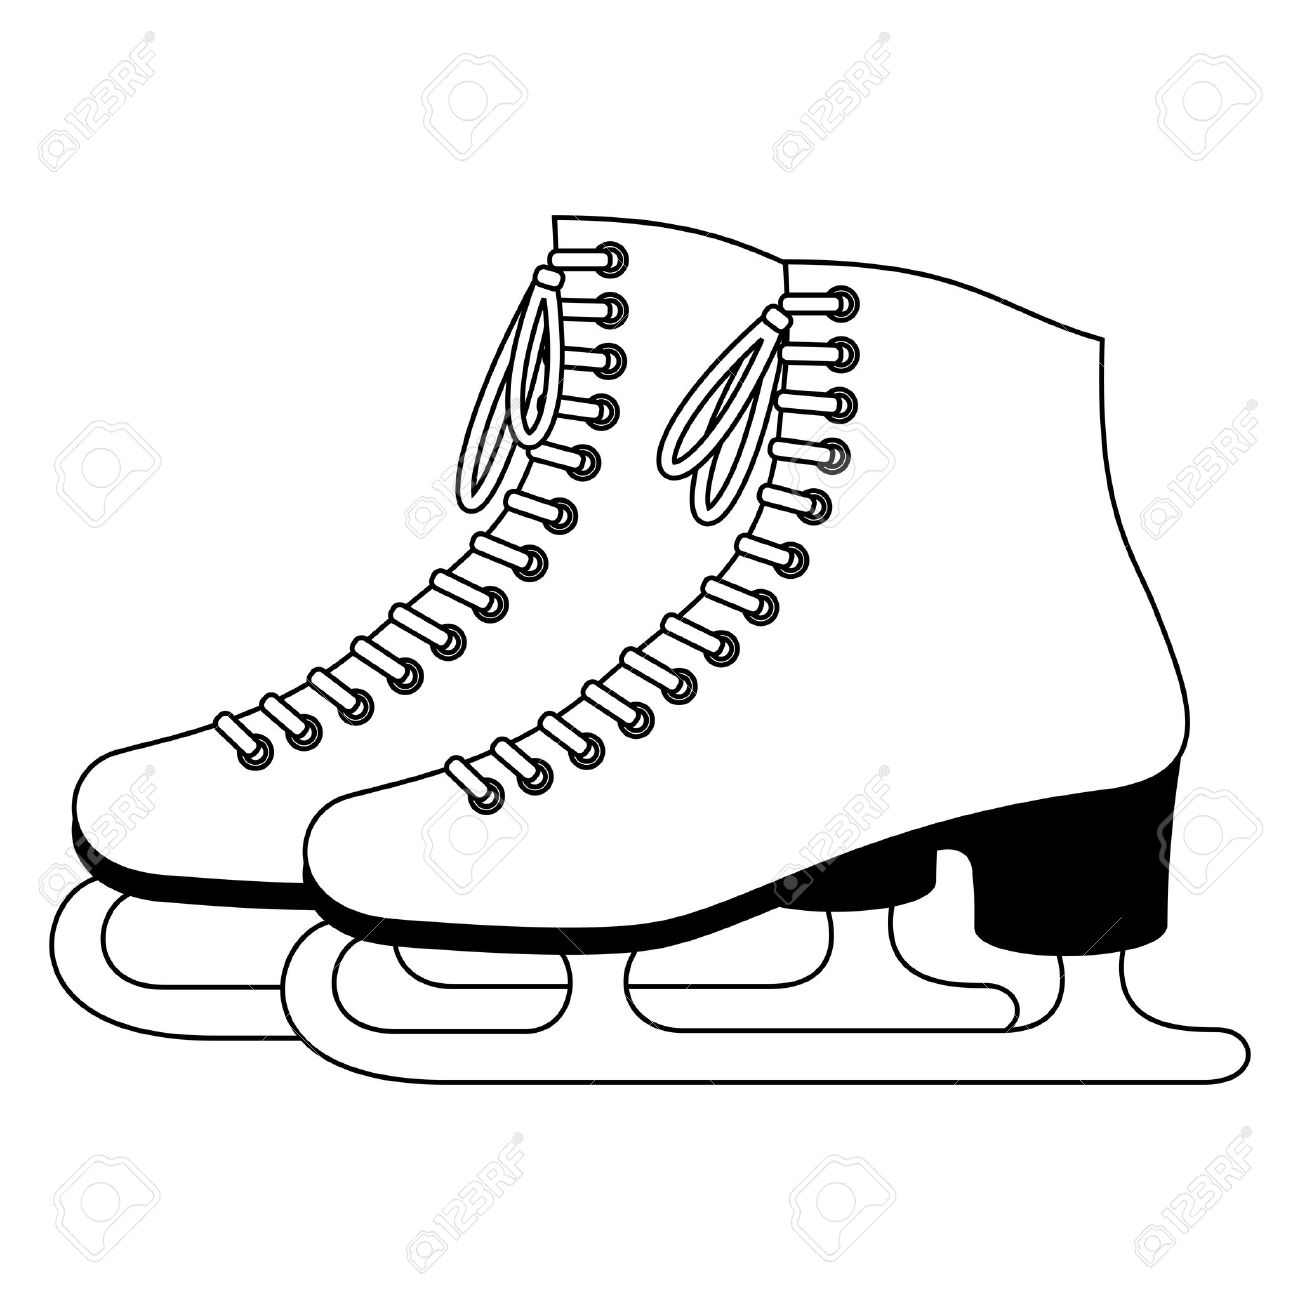 ice skates royalty free cliparts vectors and stock illustration rh 123rf com ice skate clip art free ice skate shoes clip art